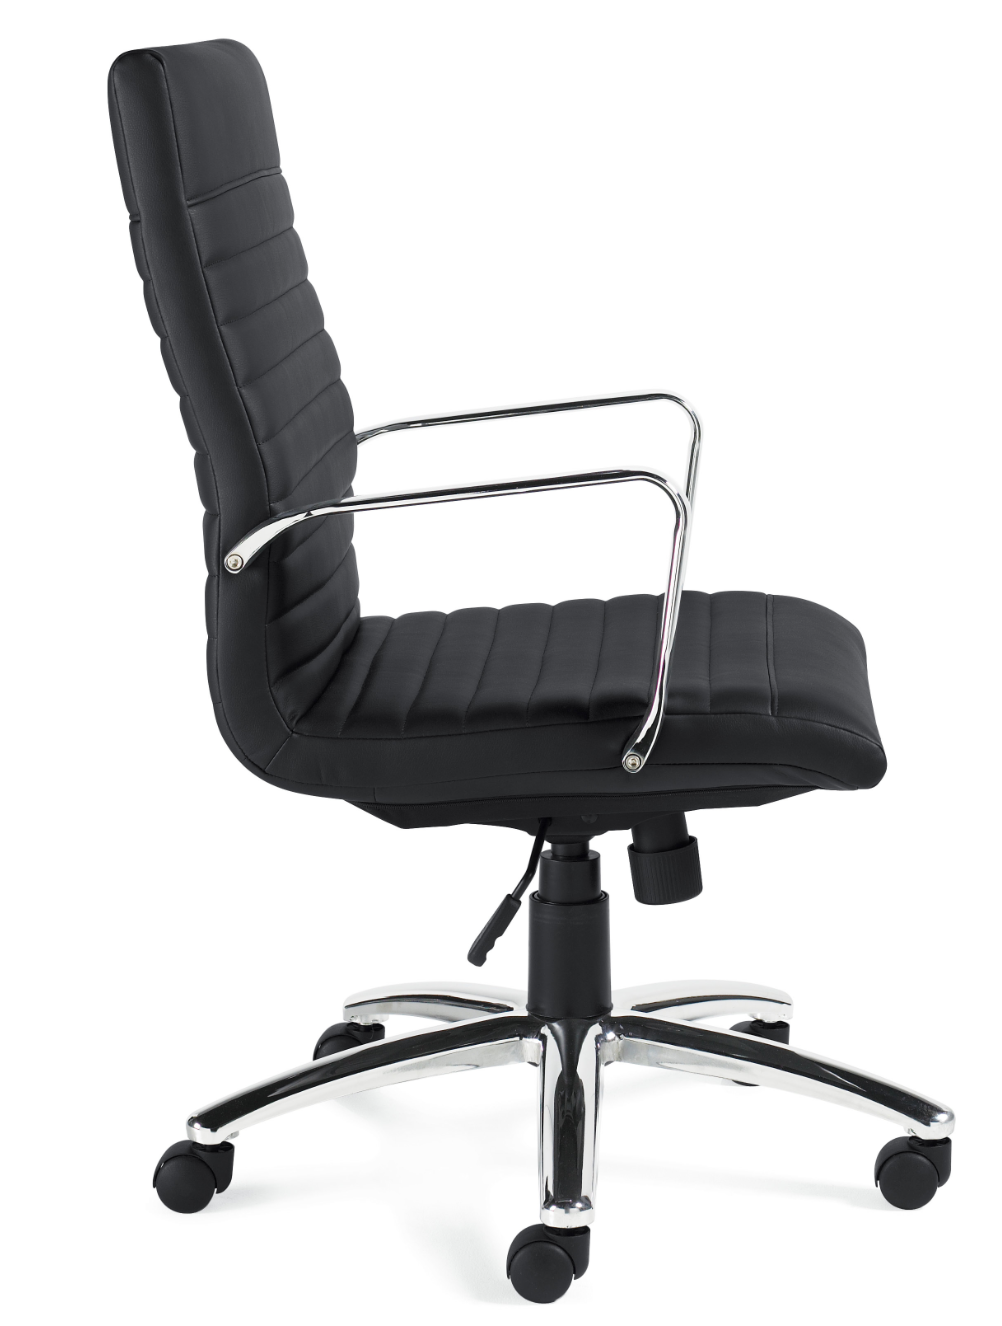 Luxhide 11730B Model Chair by Offices To Go